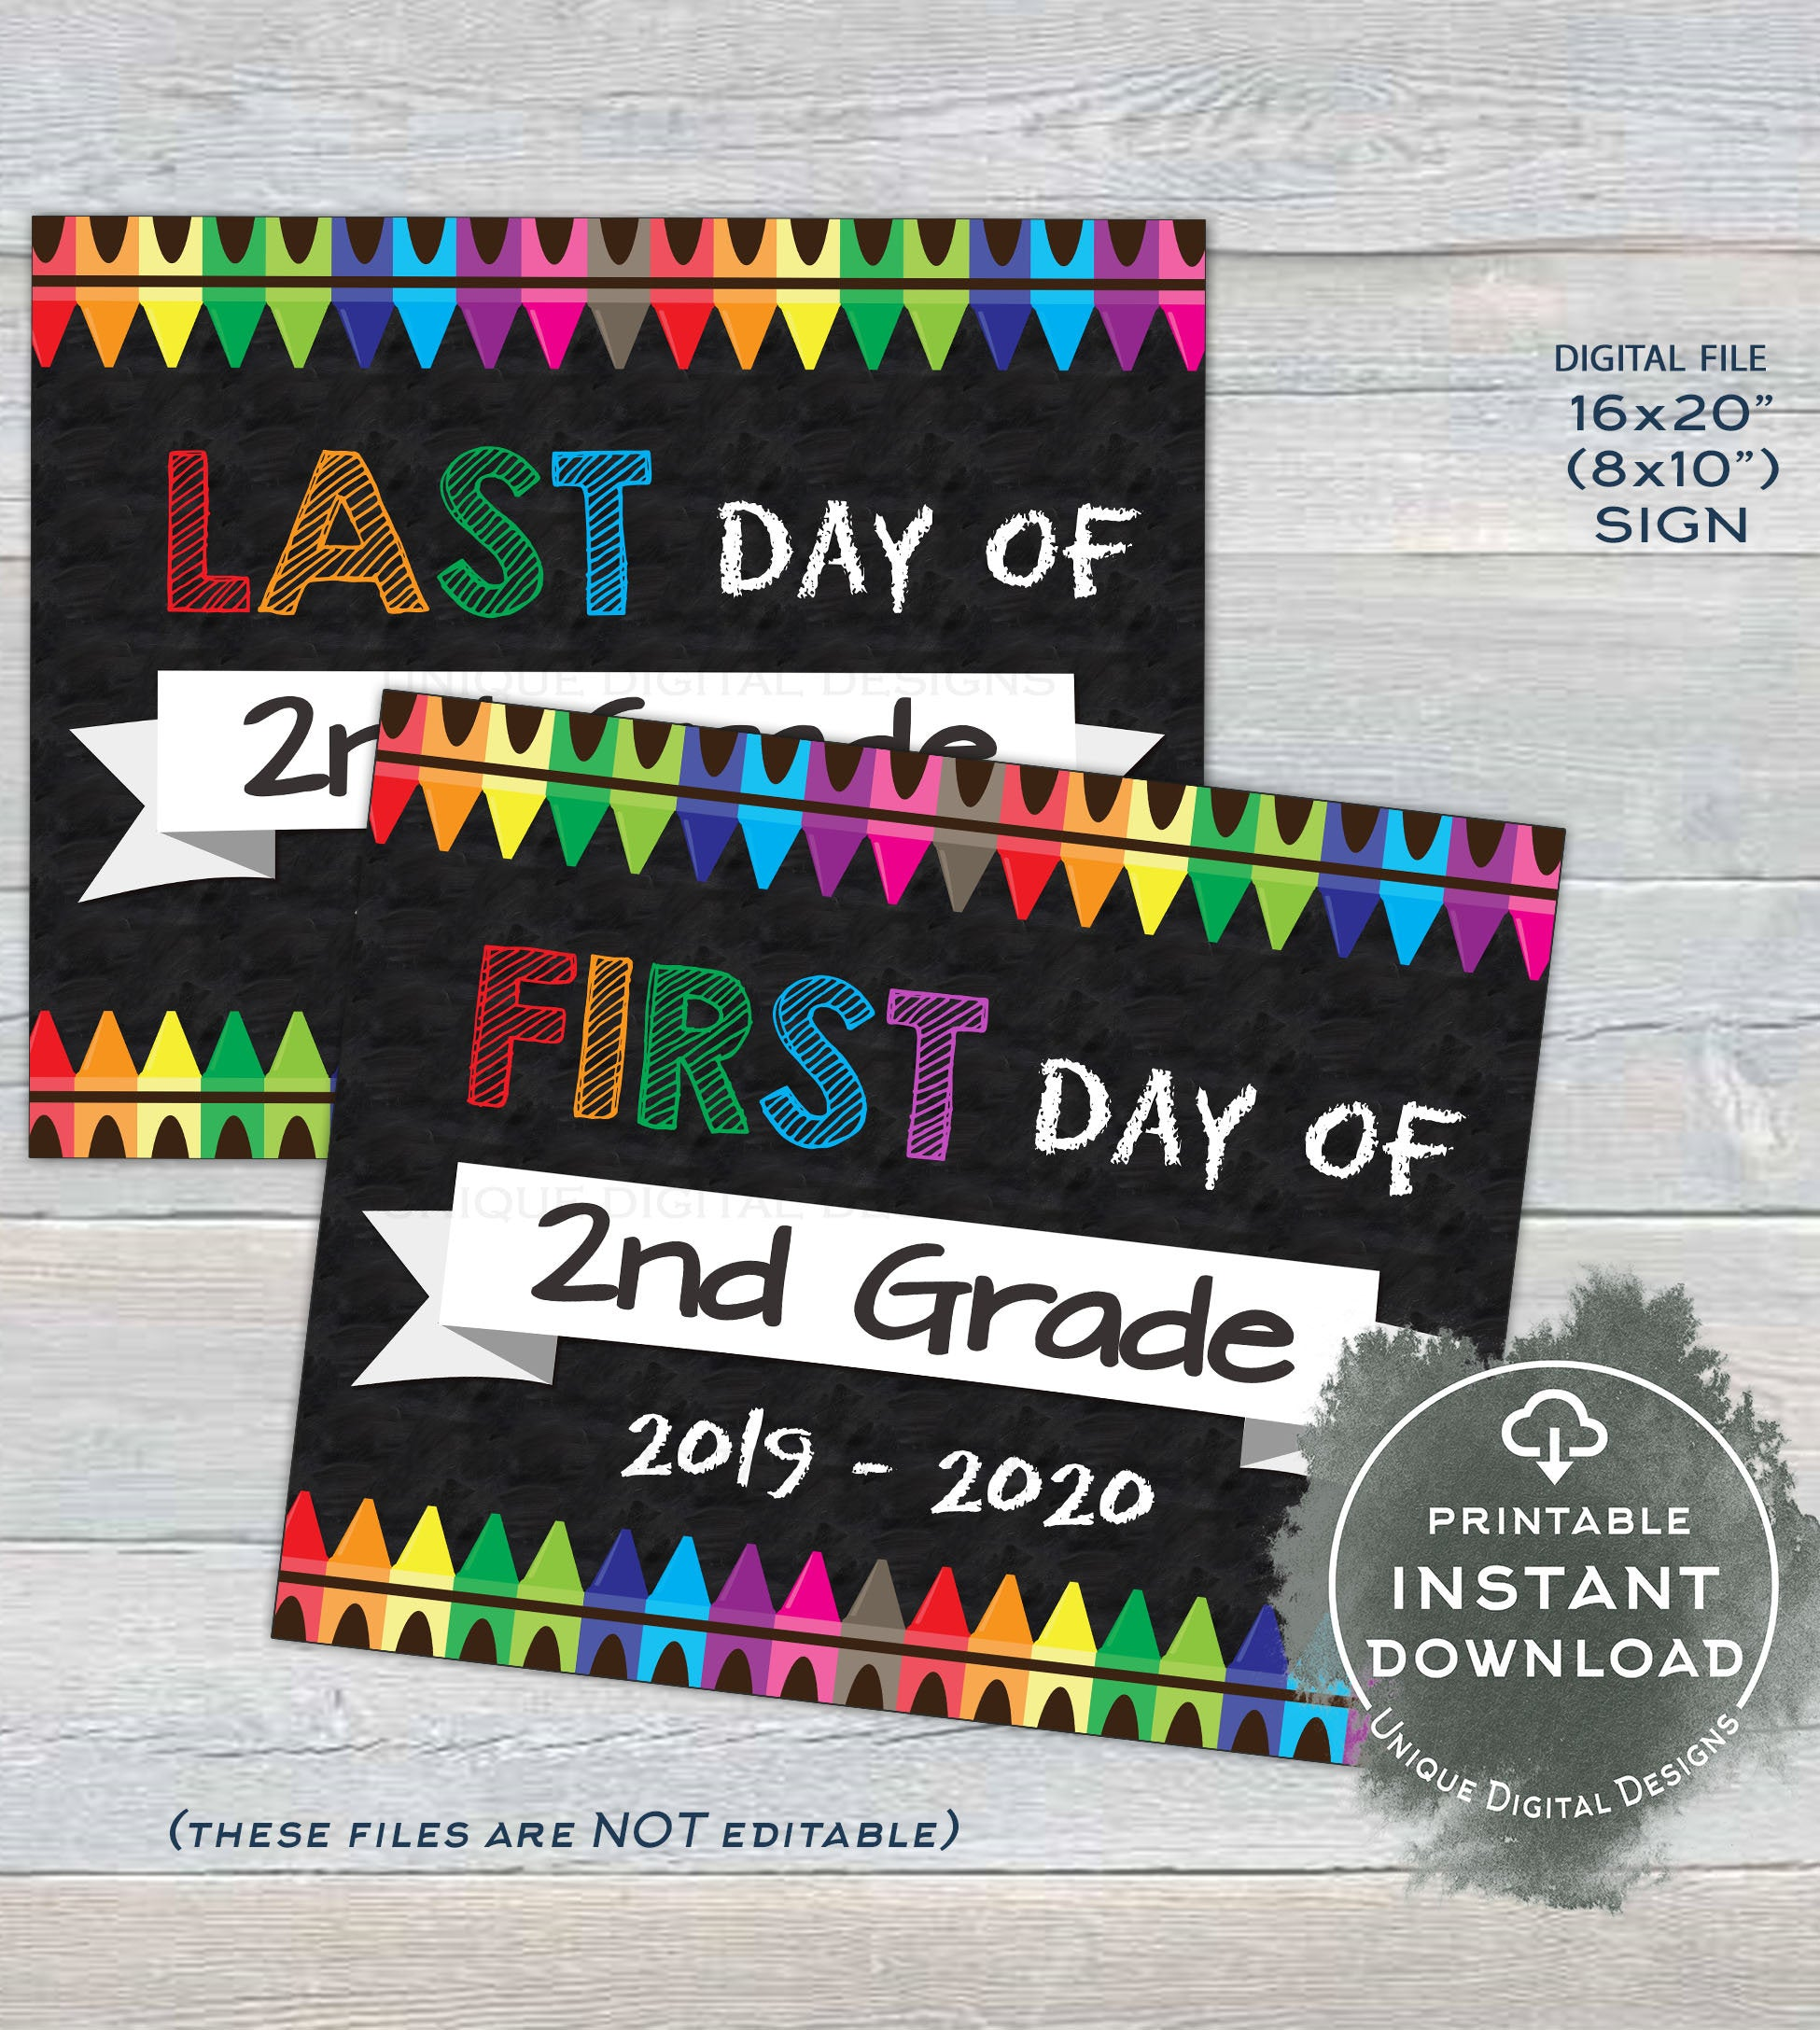 photo regarding Last Day of 2nd Grade Printable named To start with working day of College or university Chalkboard Indicator reusable 1st working day 2nd Quality Signal Final working day of Higher education Crayon Electronic Printable Instantaneous Obtain 16x20 8x10